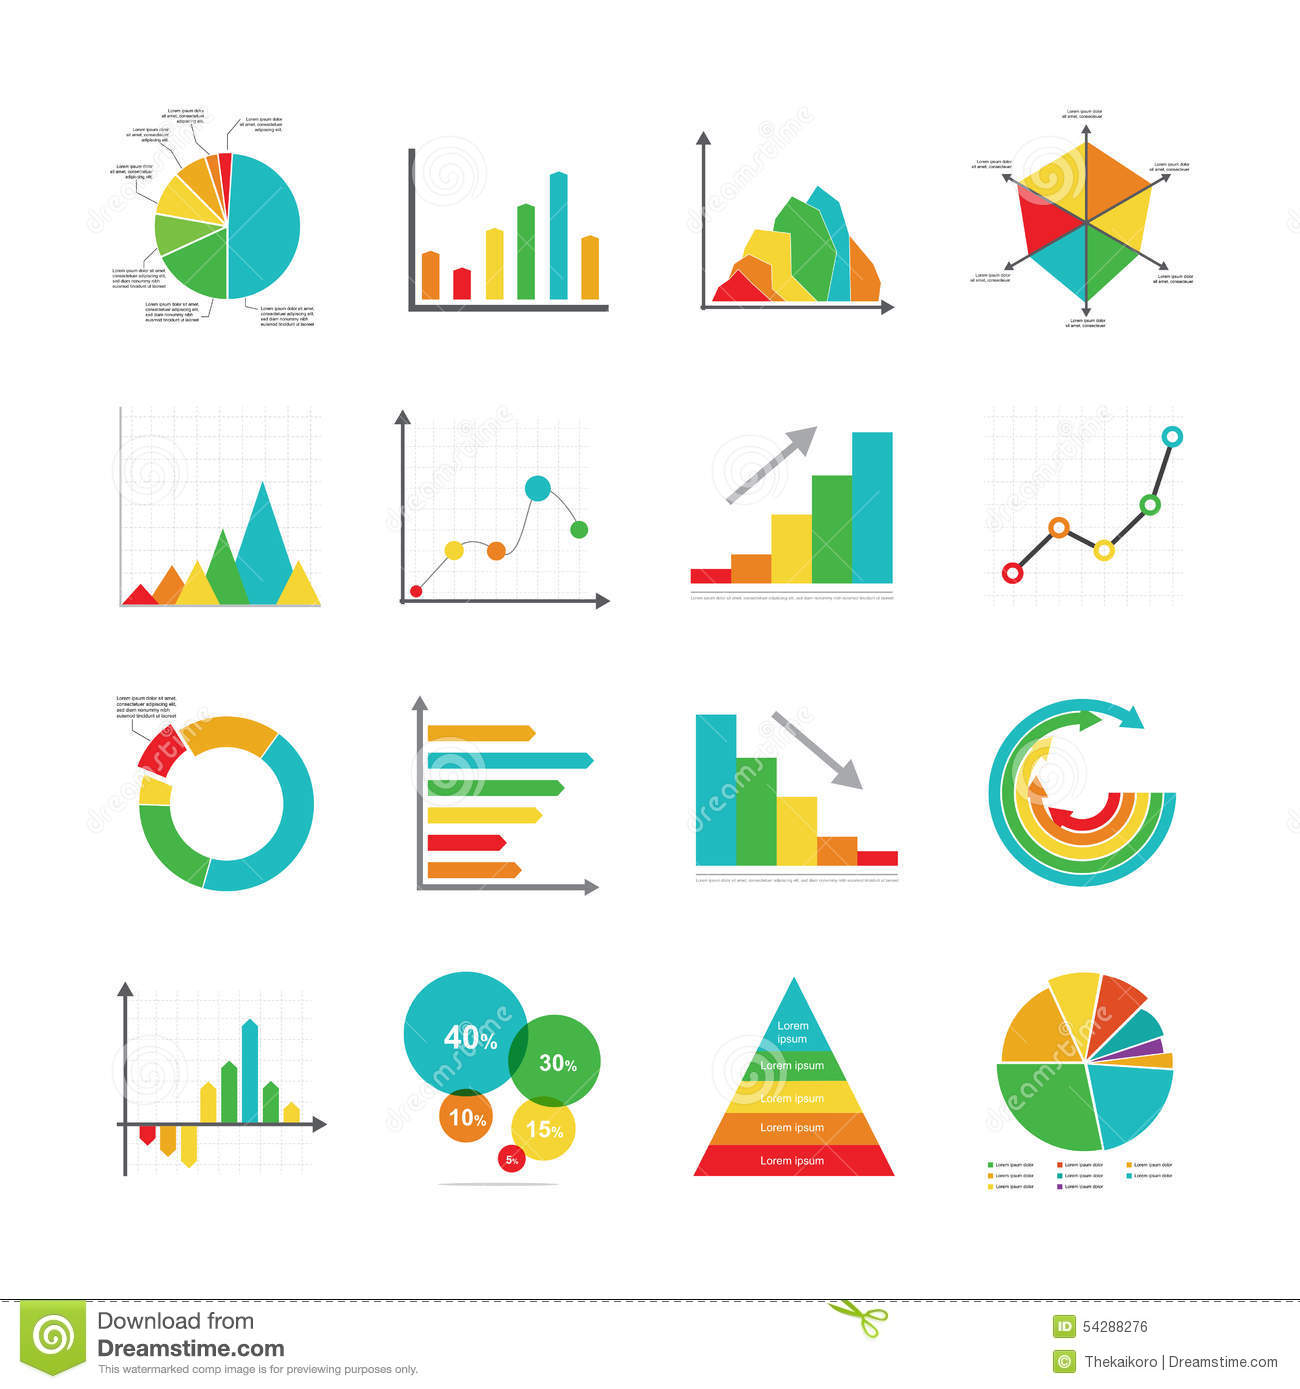 how to use icon sets in excel to indicate trends